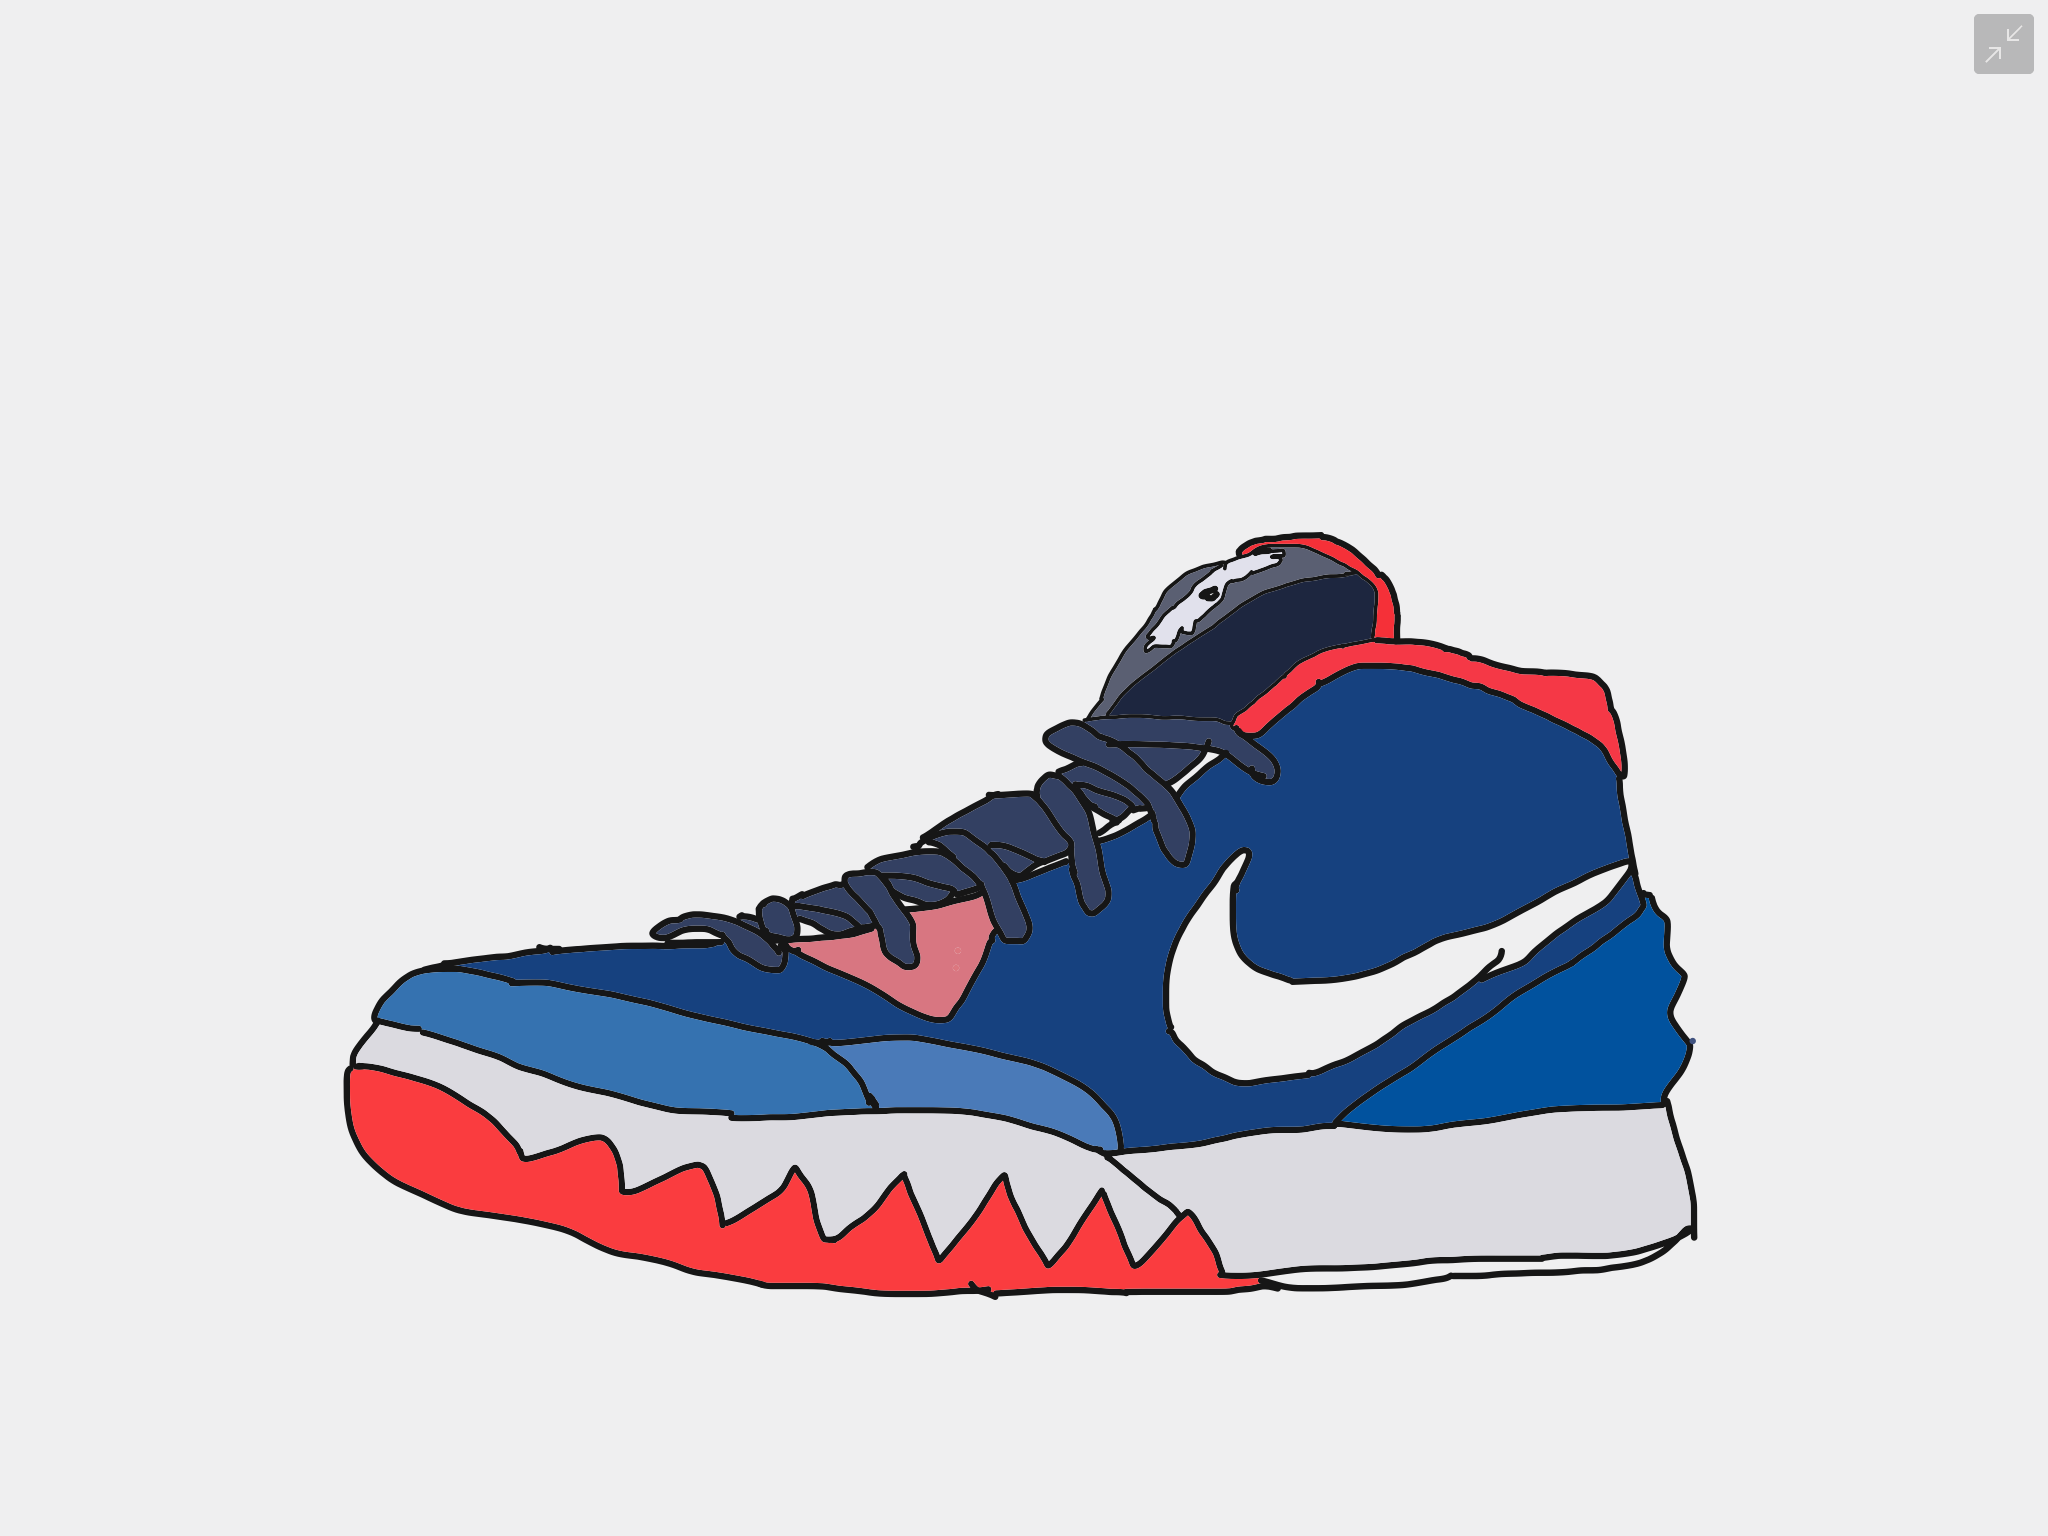 newest 2d0f5 9807f New Kyrie Irving shoes   Kyrie Irving   Pinterest   Kyrie irving, Kyrie  irving shoes and Irving shoes